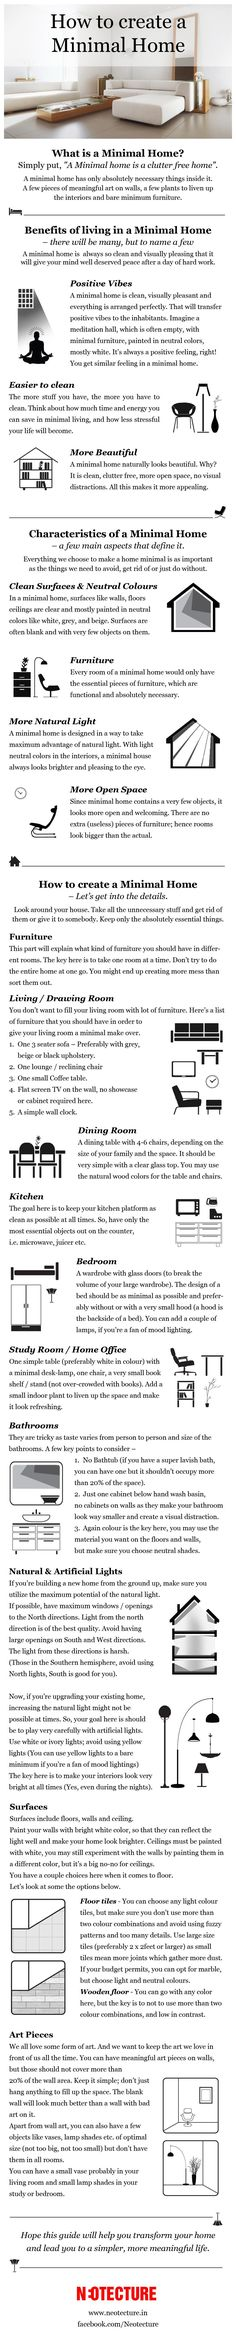 Here's How You Should De-Clutter Your Home